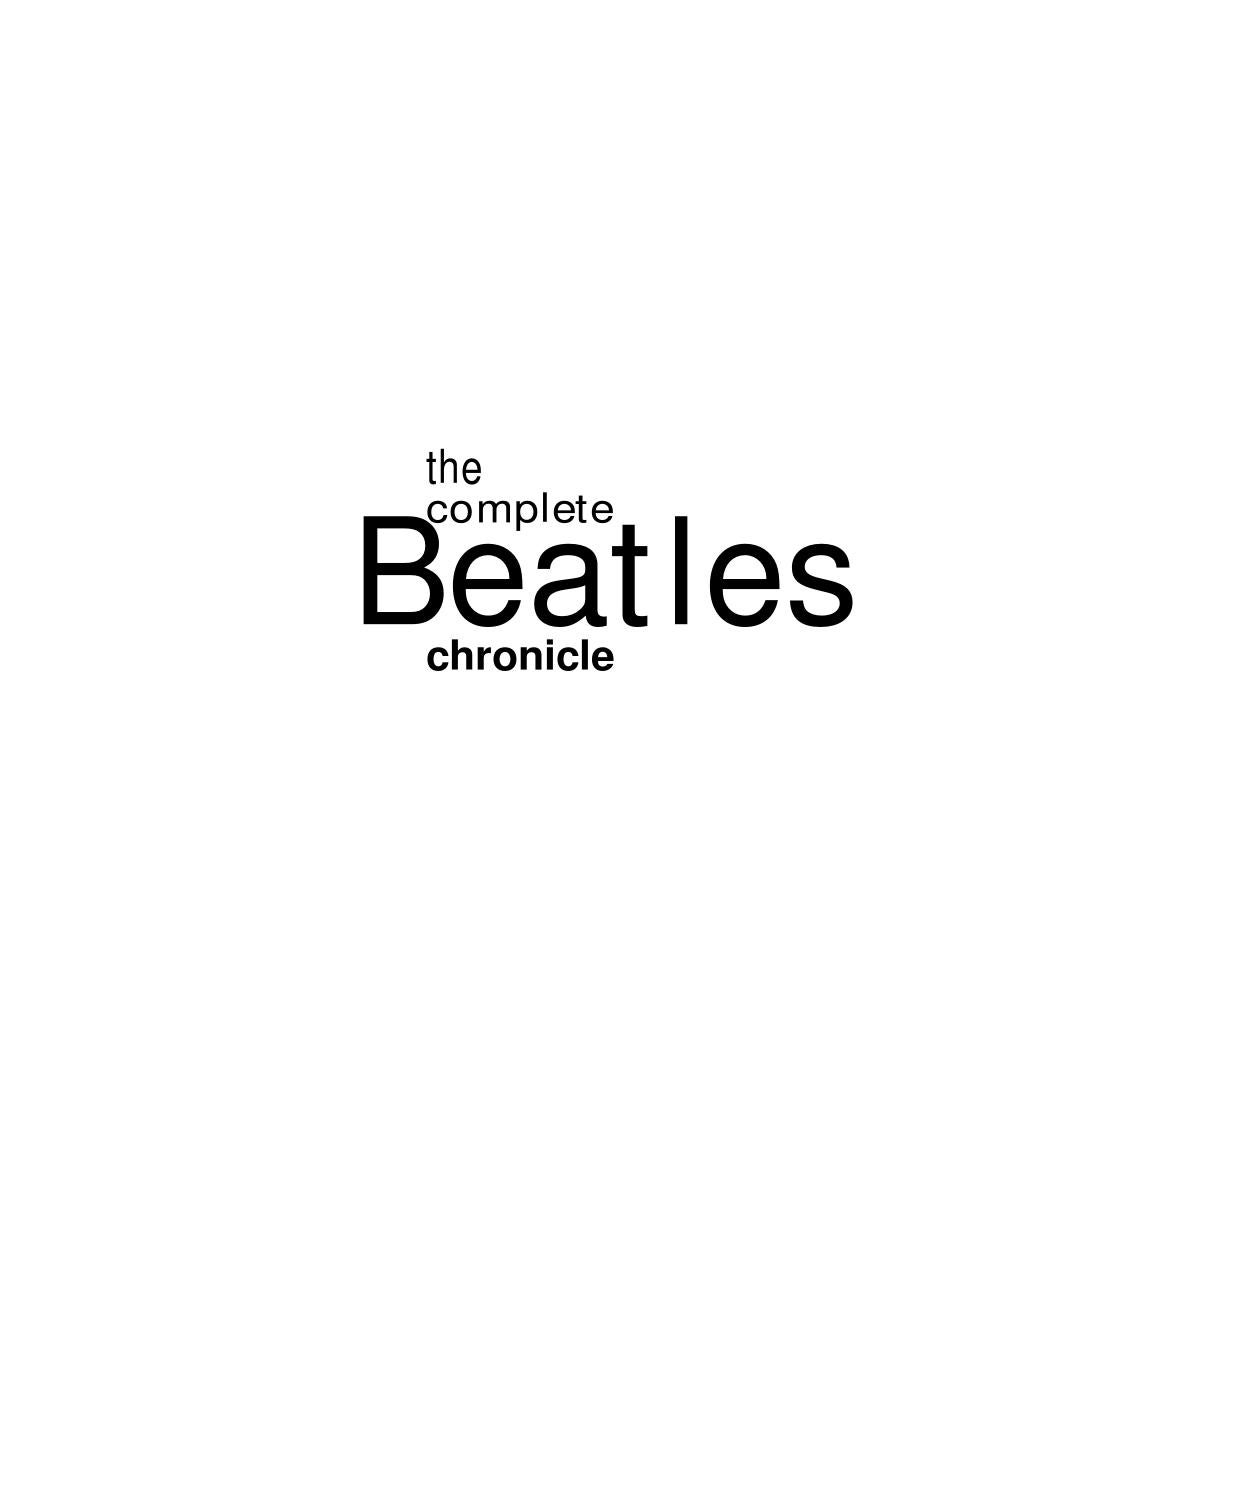 50c2f98fe The Complete Beatles Chronicle by Lucho Cohaila Guzman - issuu